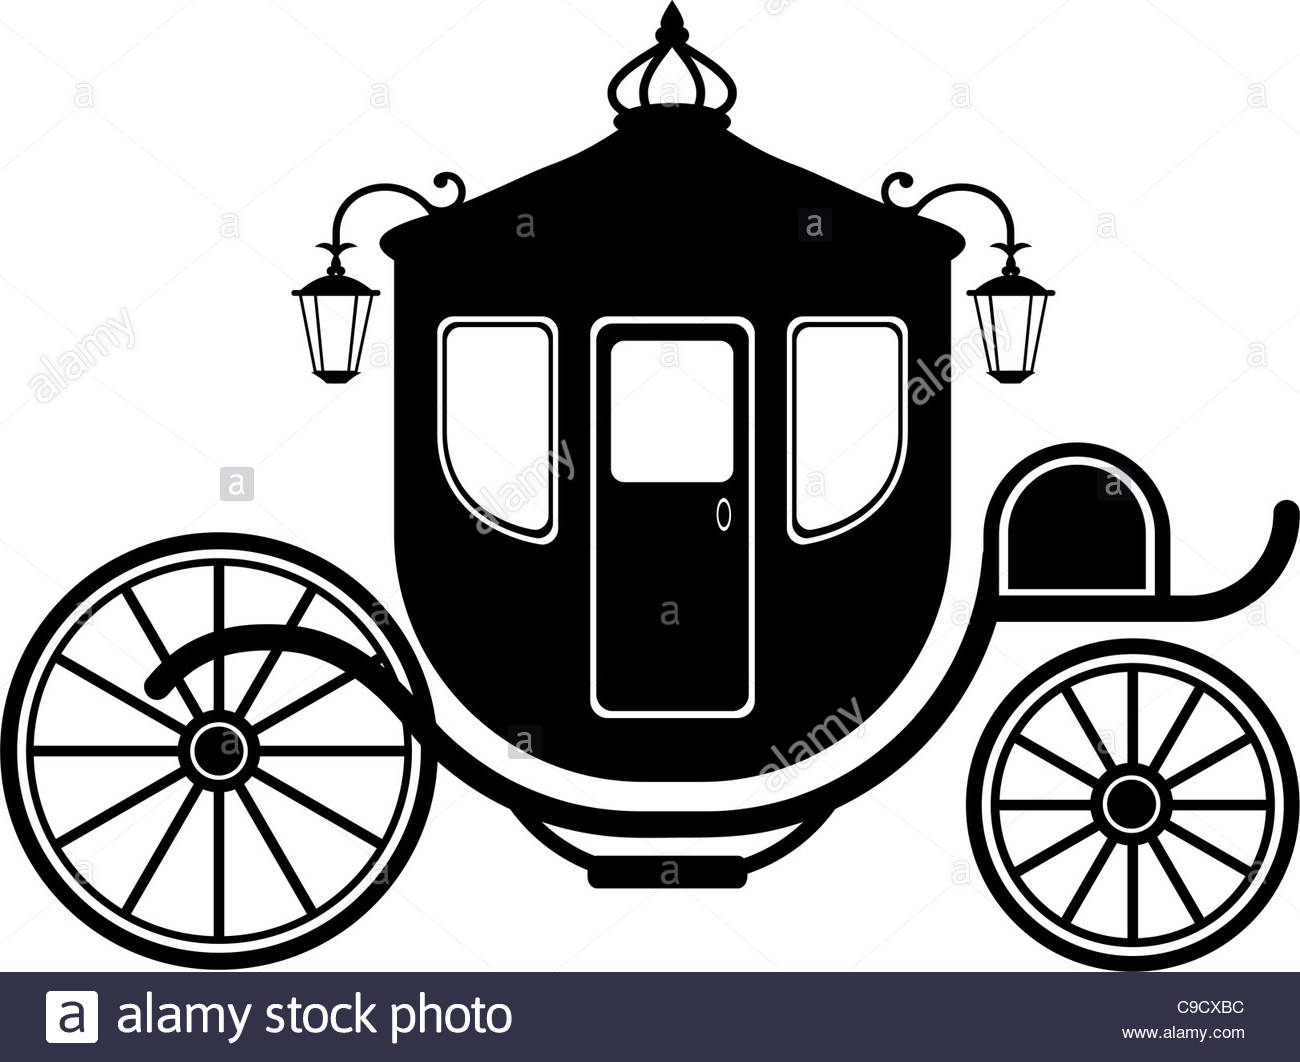 1300x1062 Carriage In Silhouette Stock Photo, Royalty Free Image 40236768